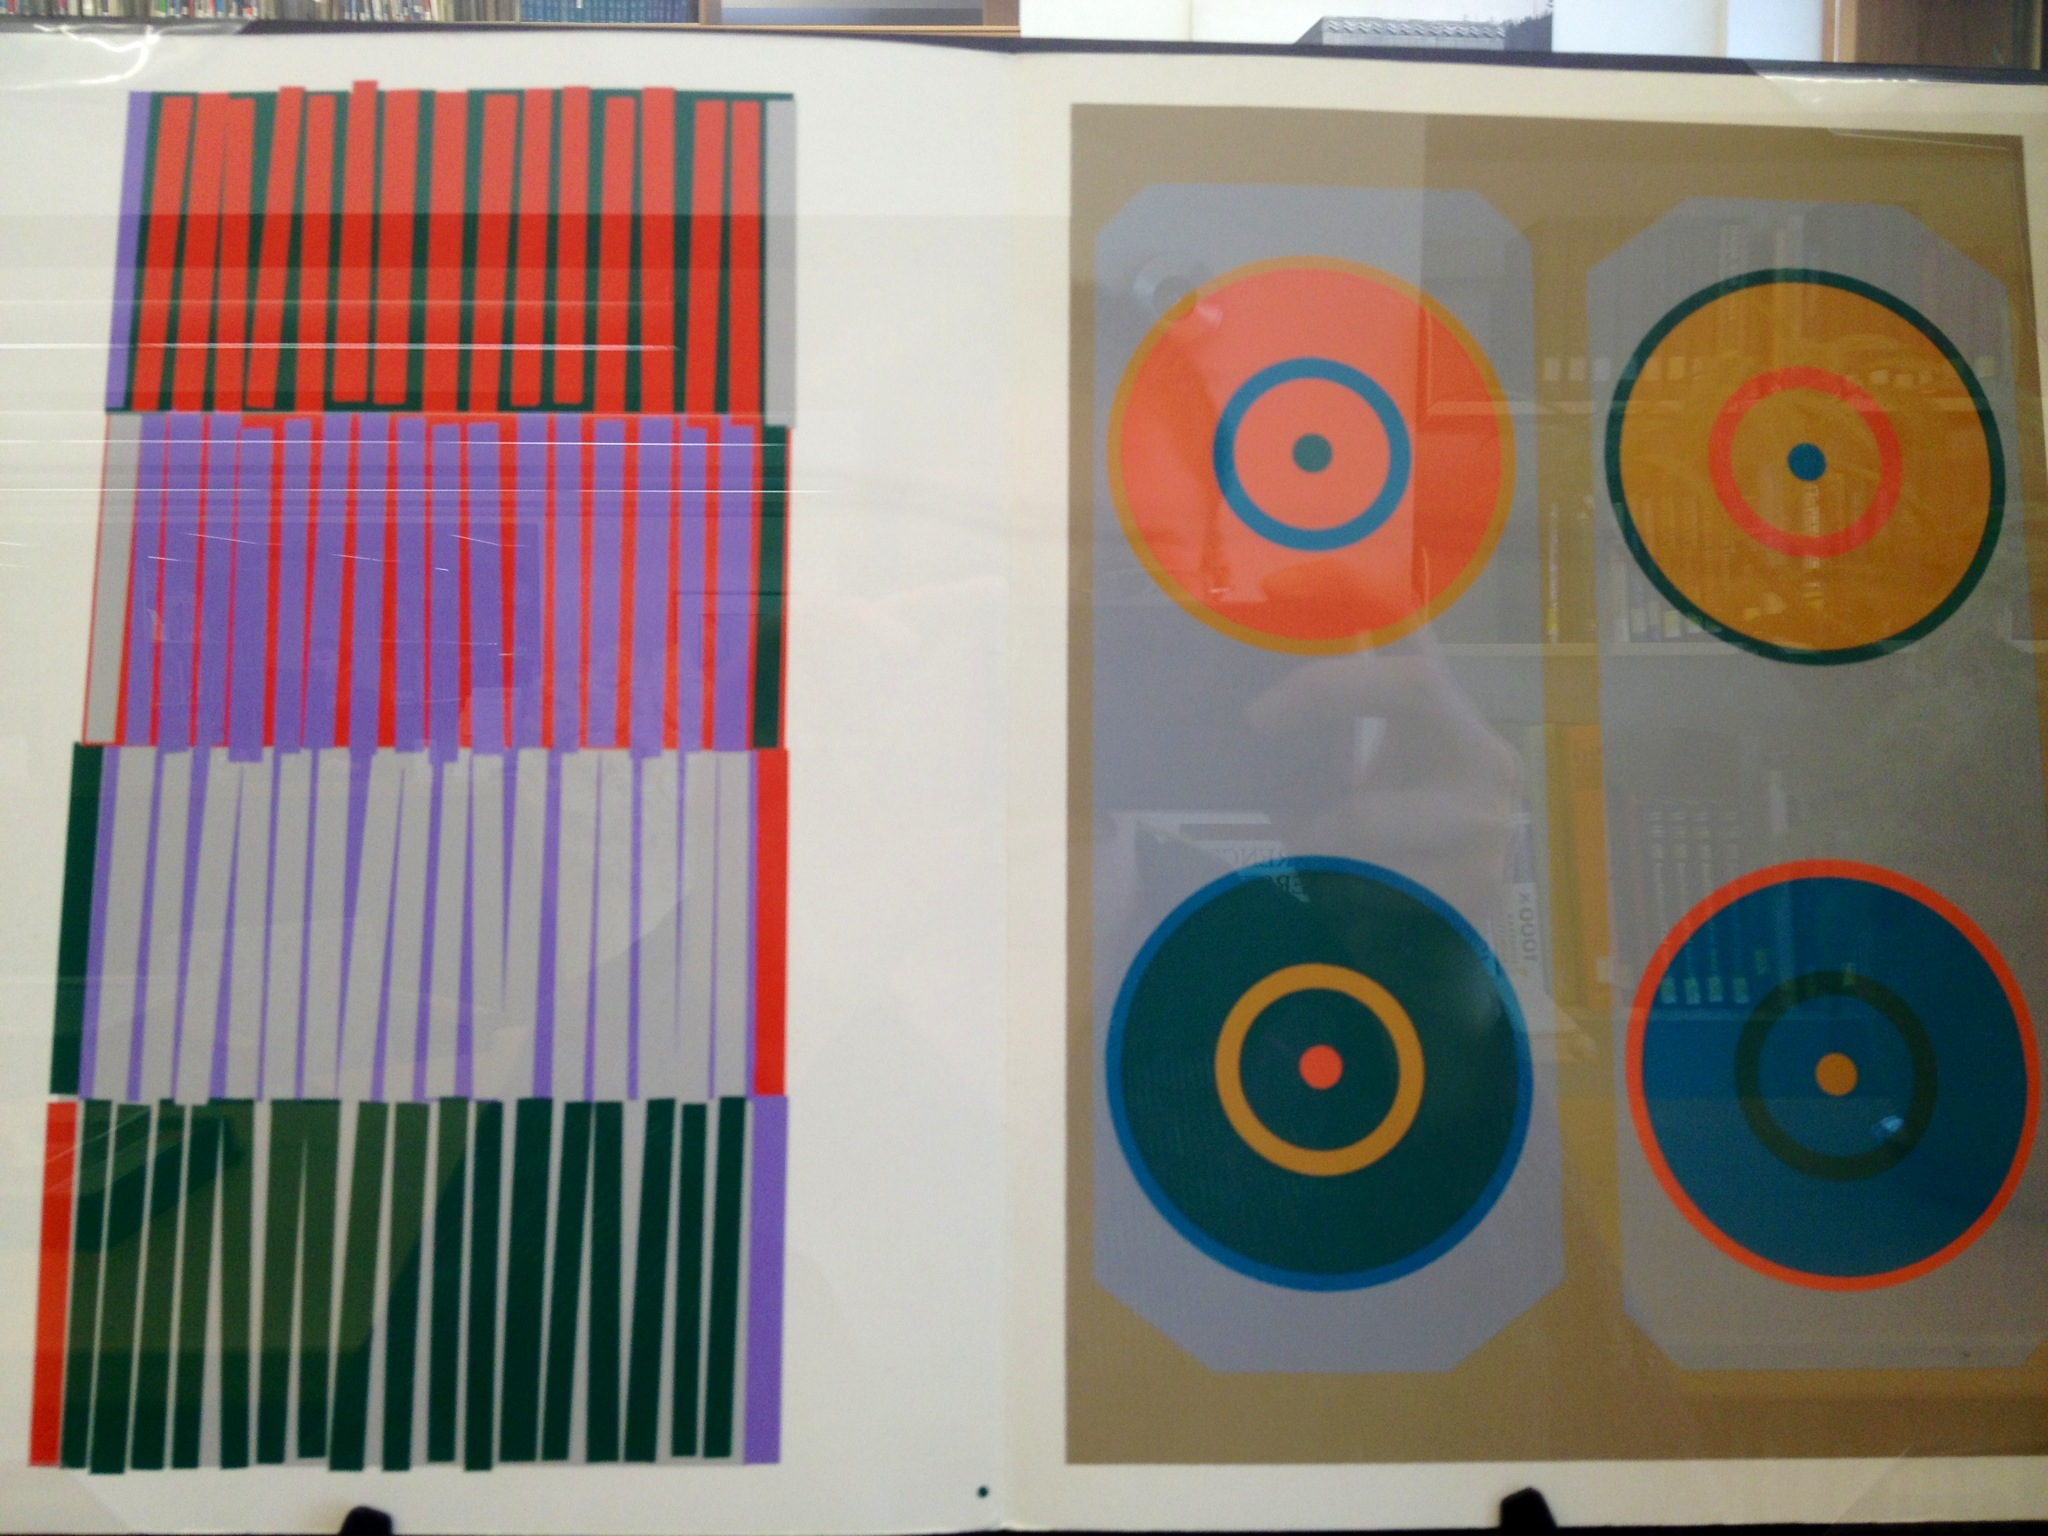 This plate explores how changes of quantity in color can change appearance and influence color. Here, four colors are presented in four different arrangements.